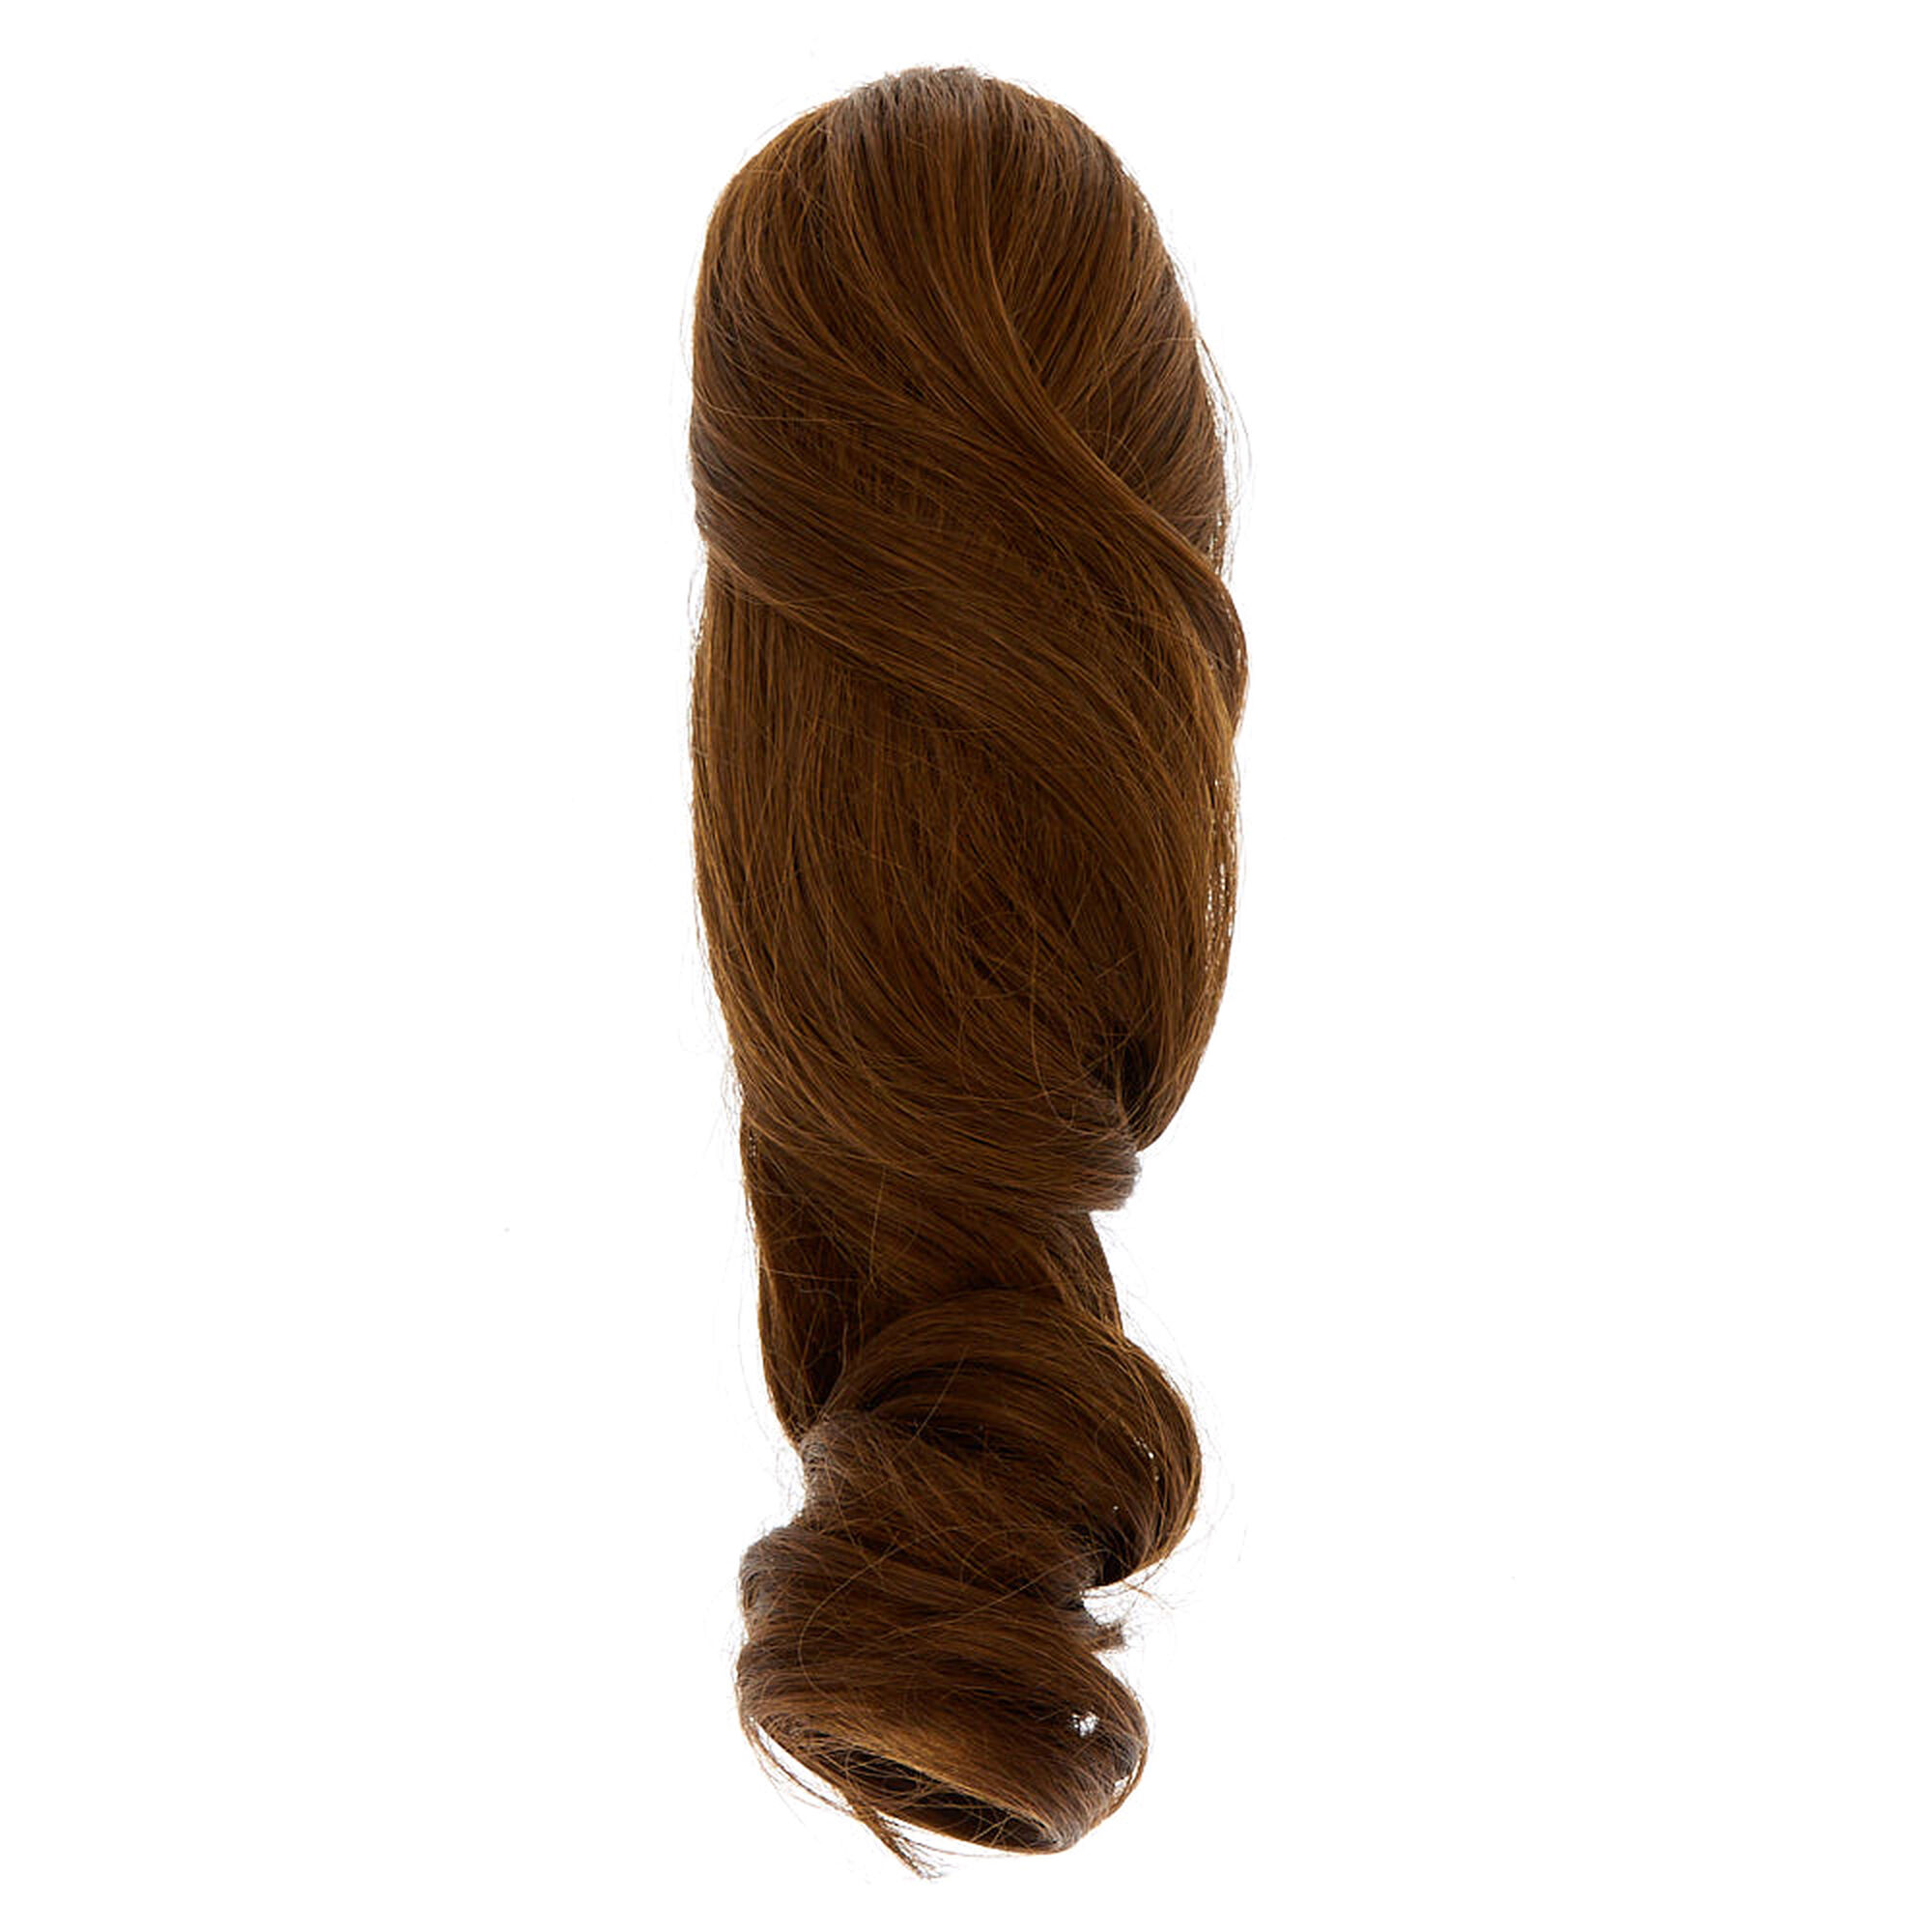 Short Faux Hair Extensions Ponytail Claw Brown Icing Us